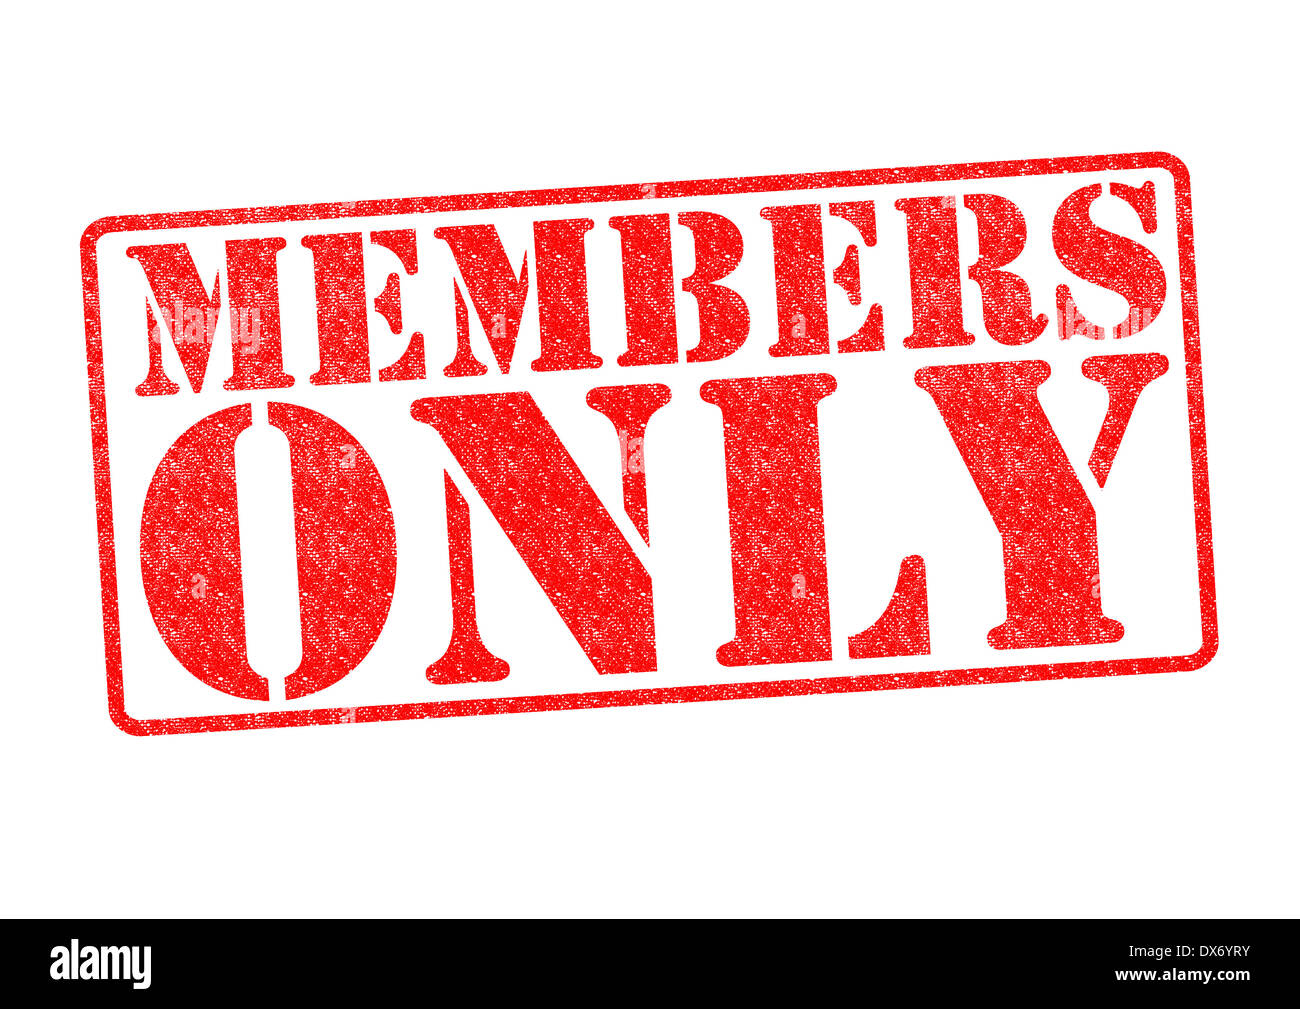 MEMBERS ONLY Rubber Stamp over a white background. - Stock Image